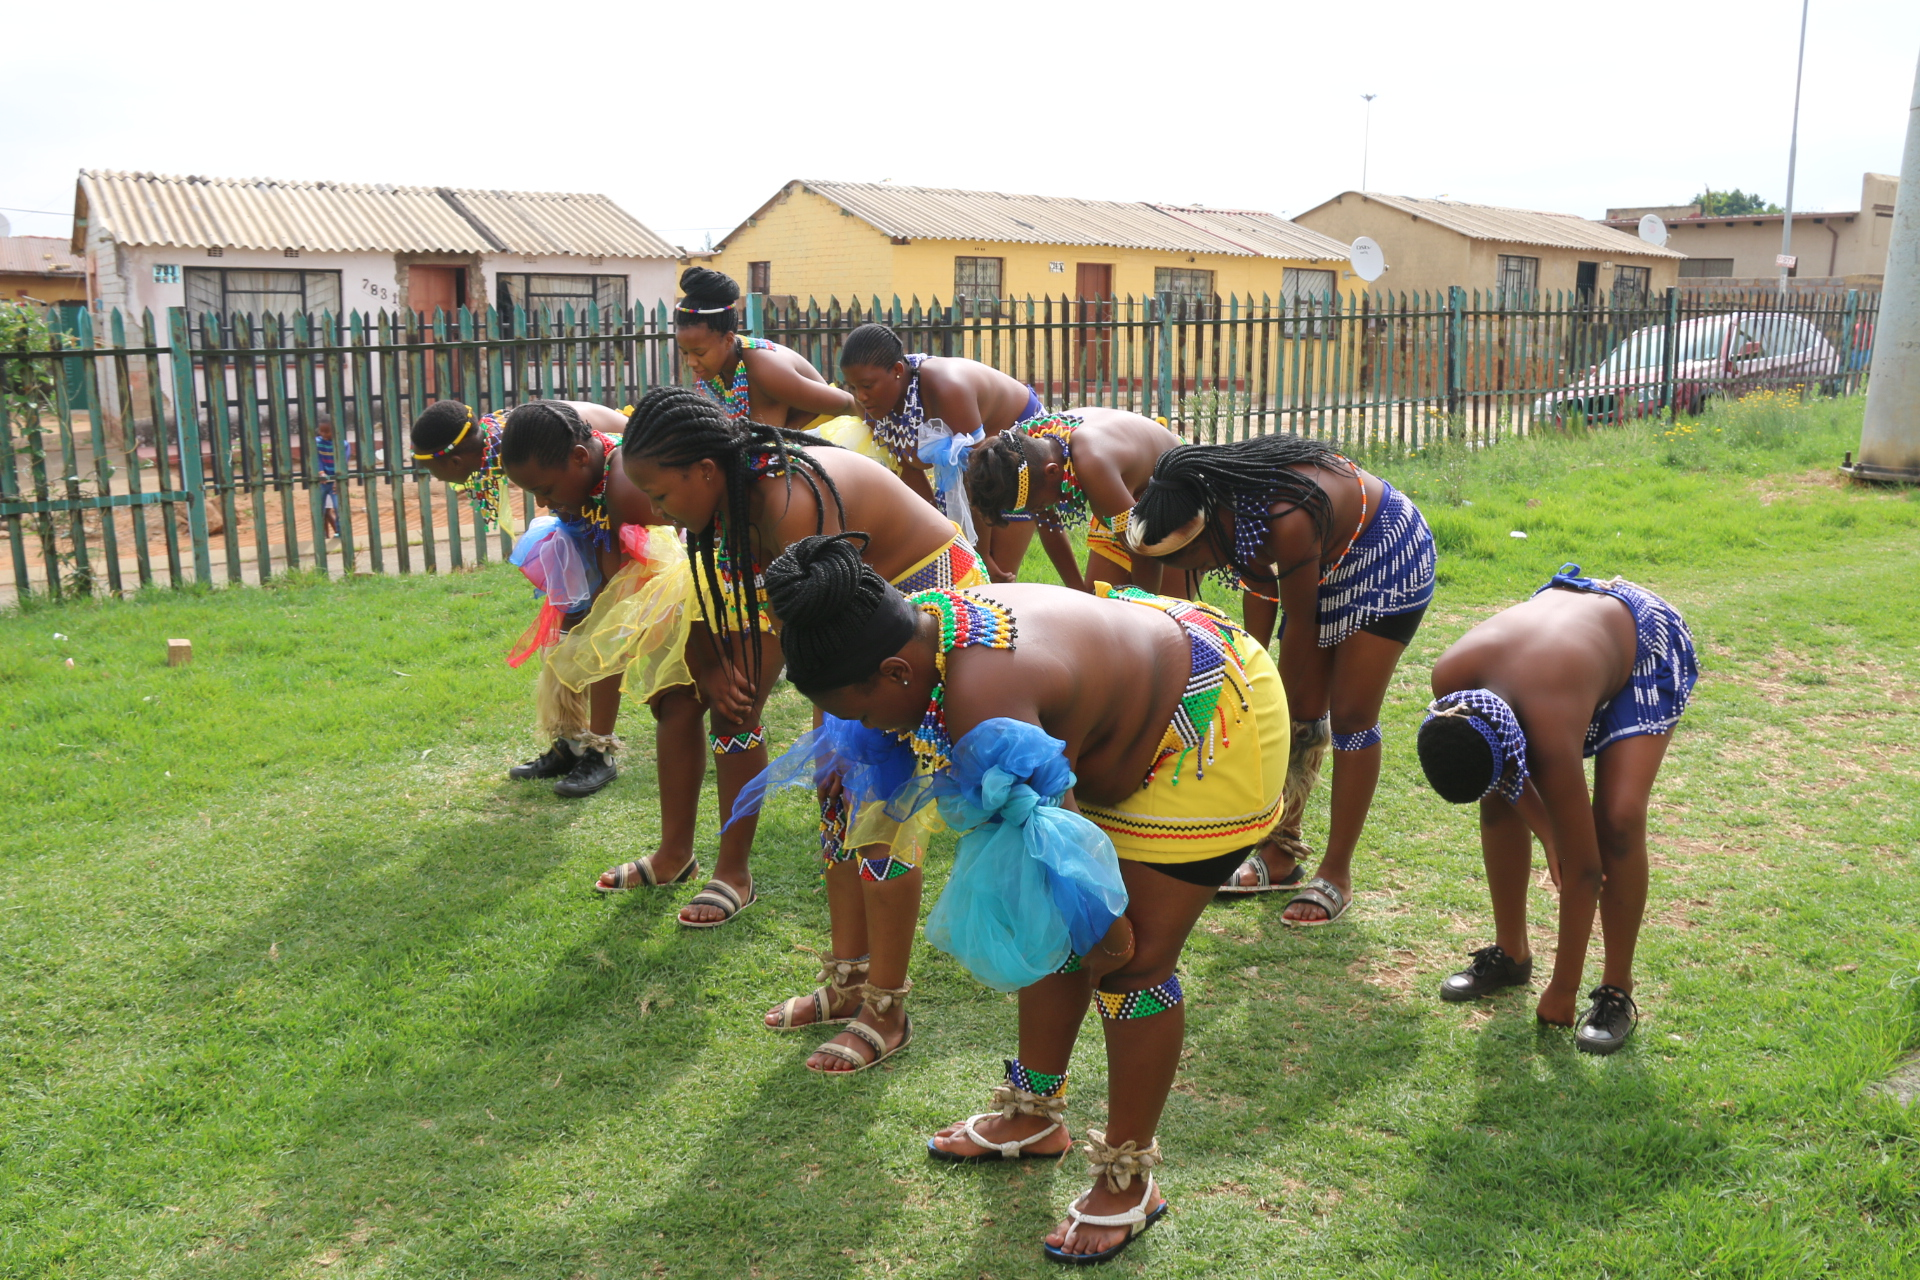 Remarkable, African small virgin girls join told